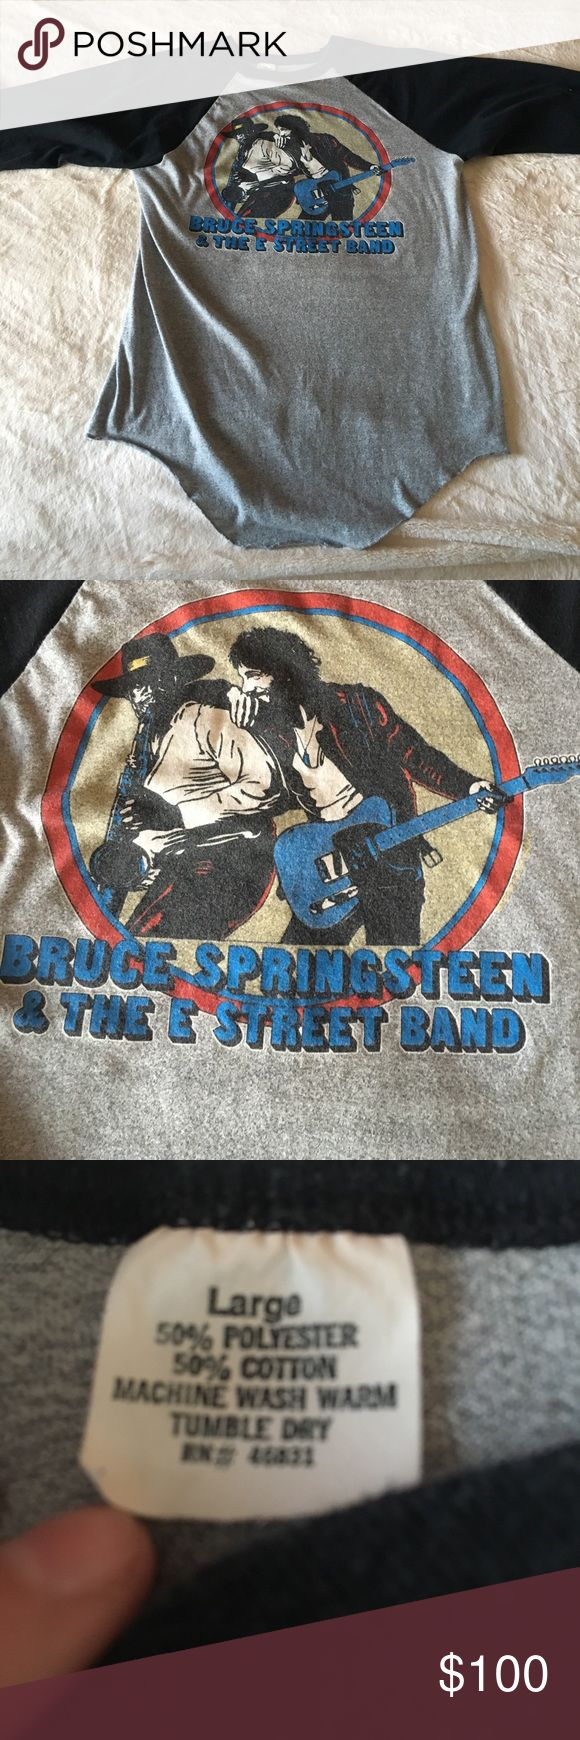 VINTAGE BRUCE SPRINGSTEEN '80-81 WORLD TOUR TEE❤ Vintage tour shirt from Bruce Springsteen's world tour in 1980-81. 100% authentic my father was a big fan. Size large. Can fit a medium too. Can fit a small as well possibly tie it up Vintage Tops